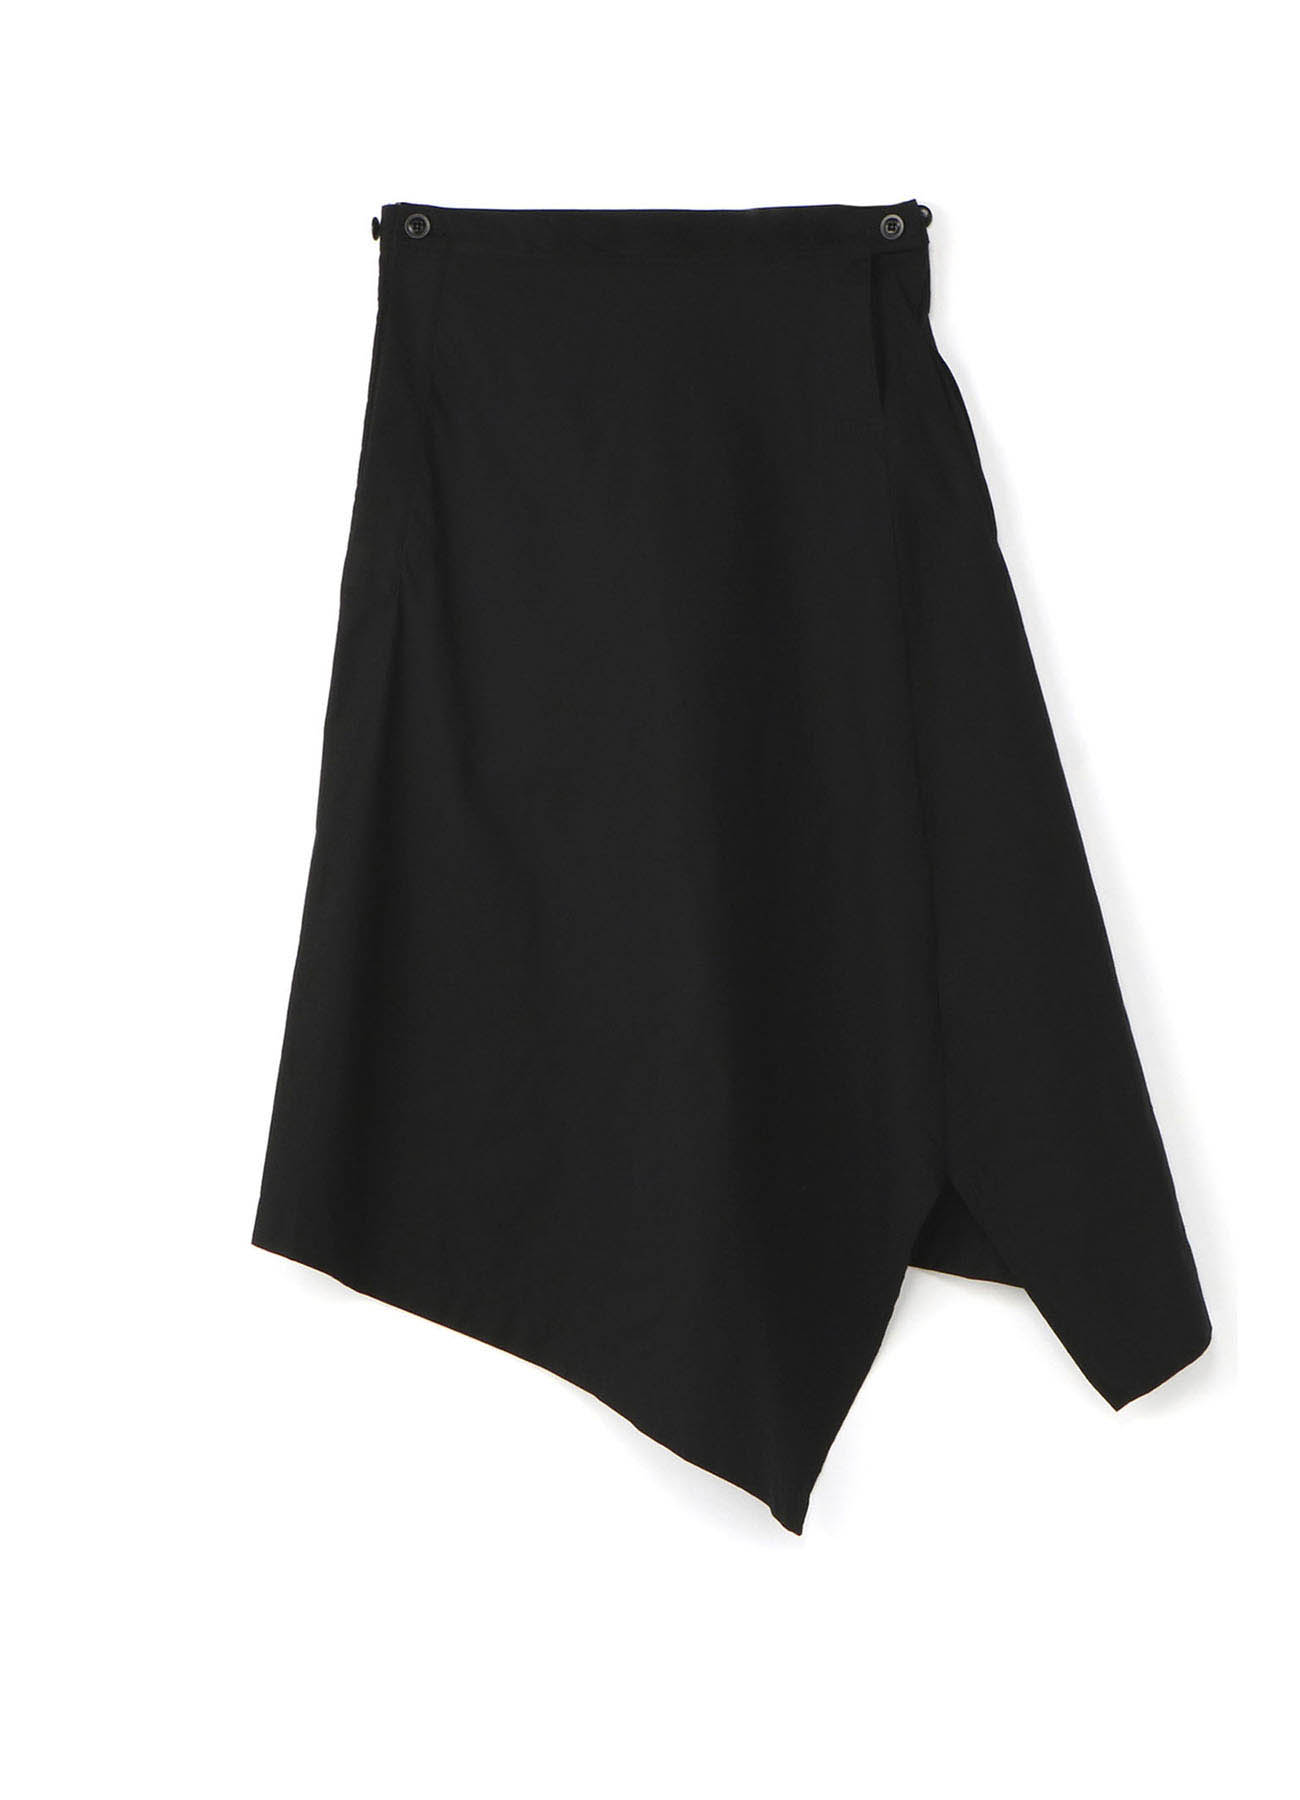 No.13 Flair Skirt Cotton Twill - Thick